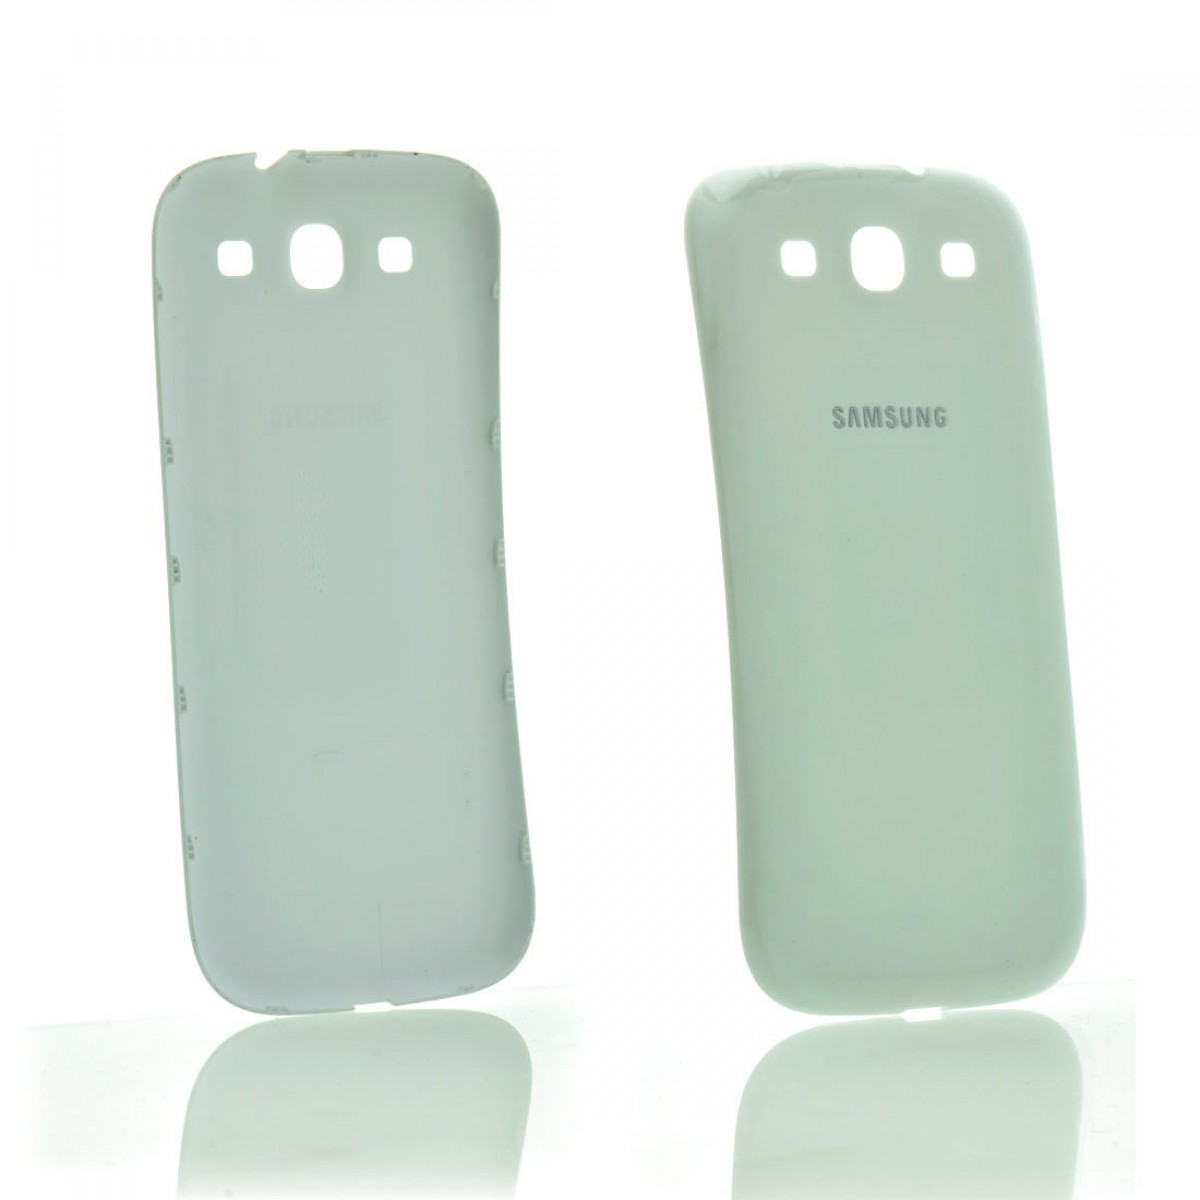 coque arri re samsung galaxy s3 i9300 blanc achat en. Black Bedroom Furniture Sets. Home Design Ideas